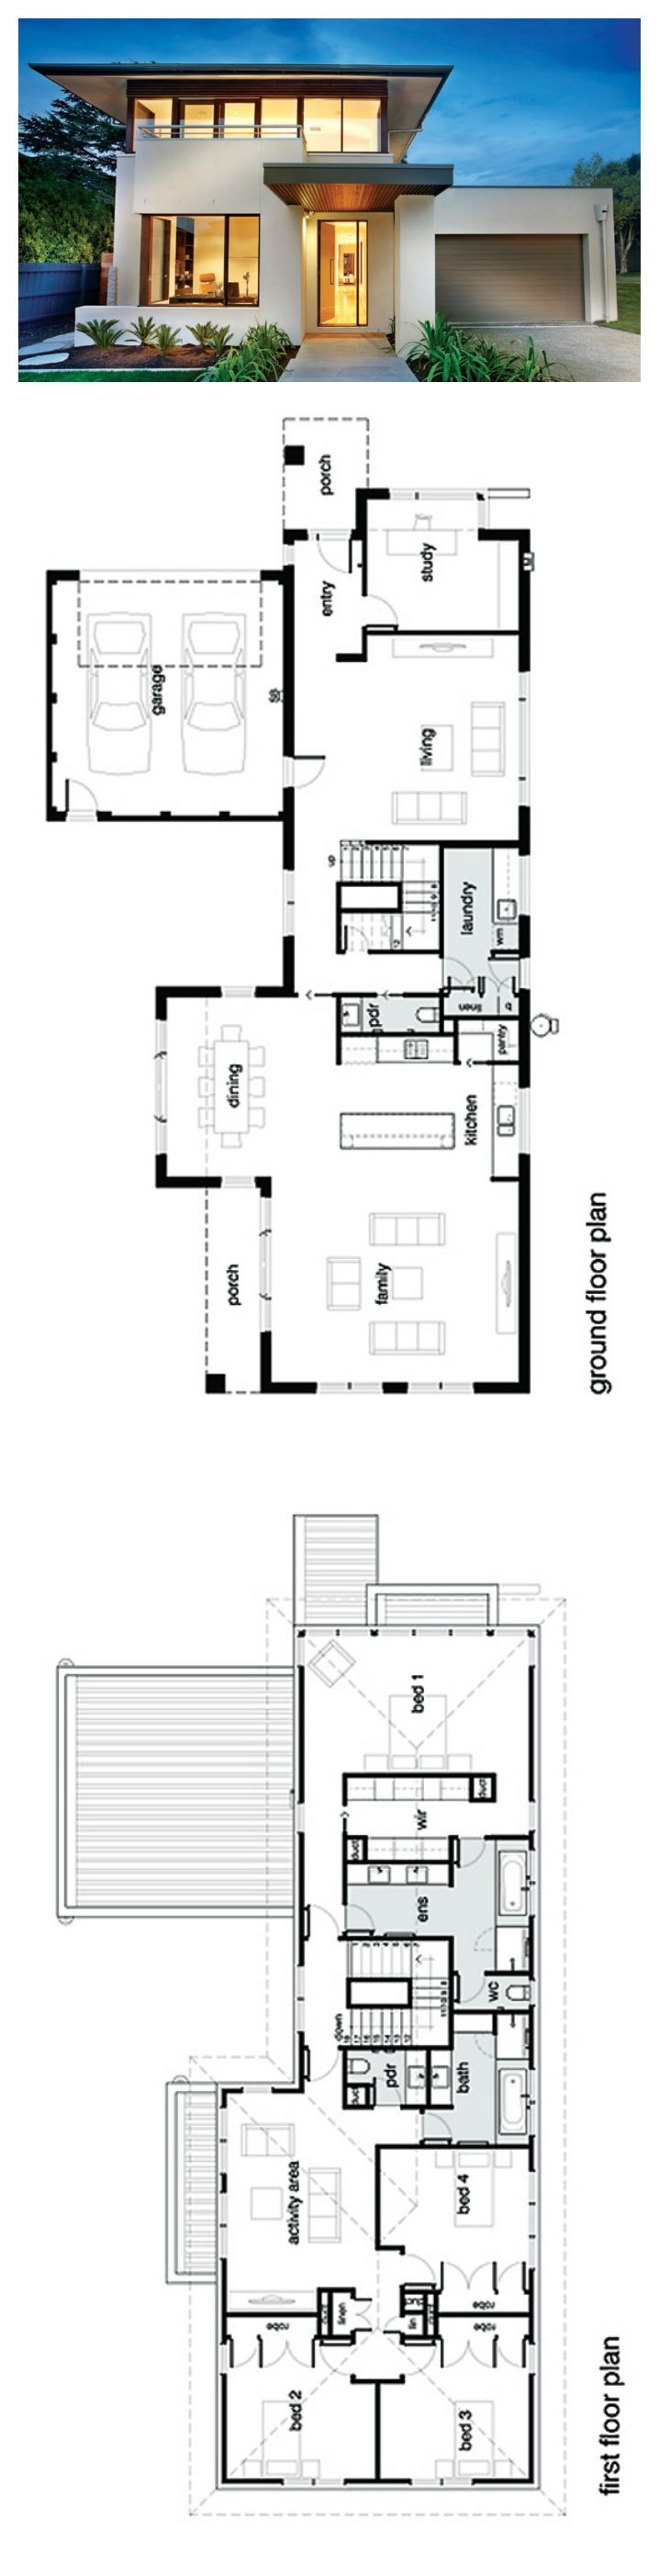 The 25 best ideas about modern house plans on pinterest Modern house floor plans